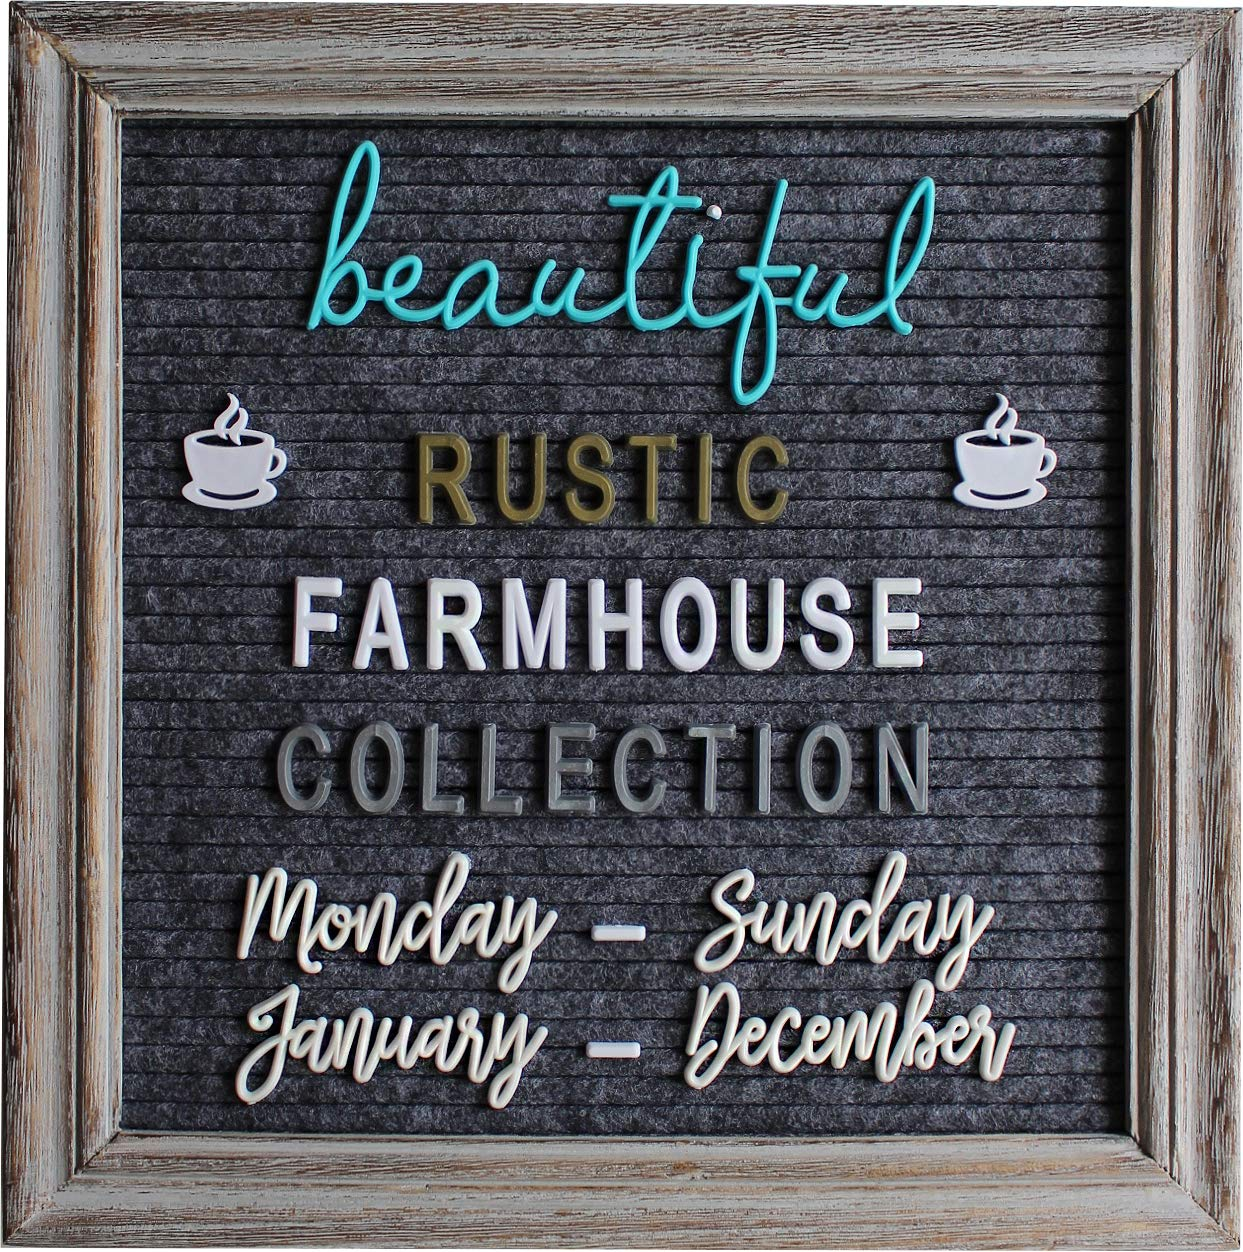 Rustic Felt Letter Board Barnwood Bundle Farmhouse Vintage Wood Frame and Stand by Felt Creative Home Goods 10x10 Inch Changeable Message Board 700+ Letter Set Numbers (10x10 Inches, Gray Gray) by Felt Creative Home Goods